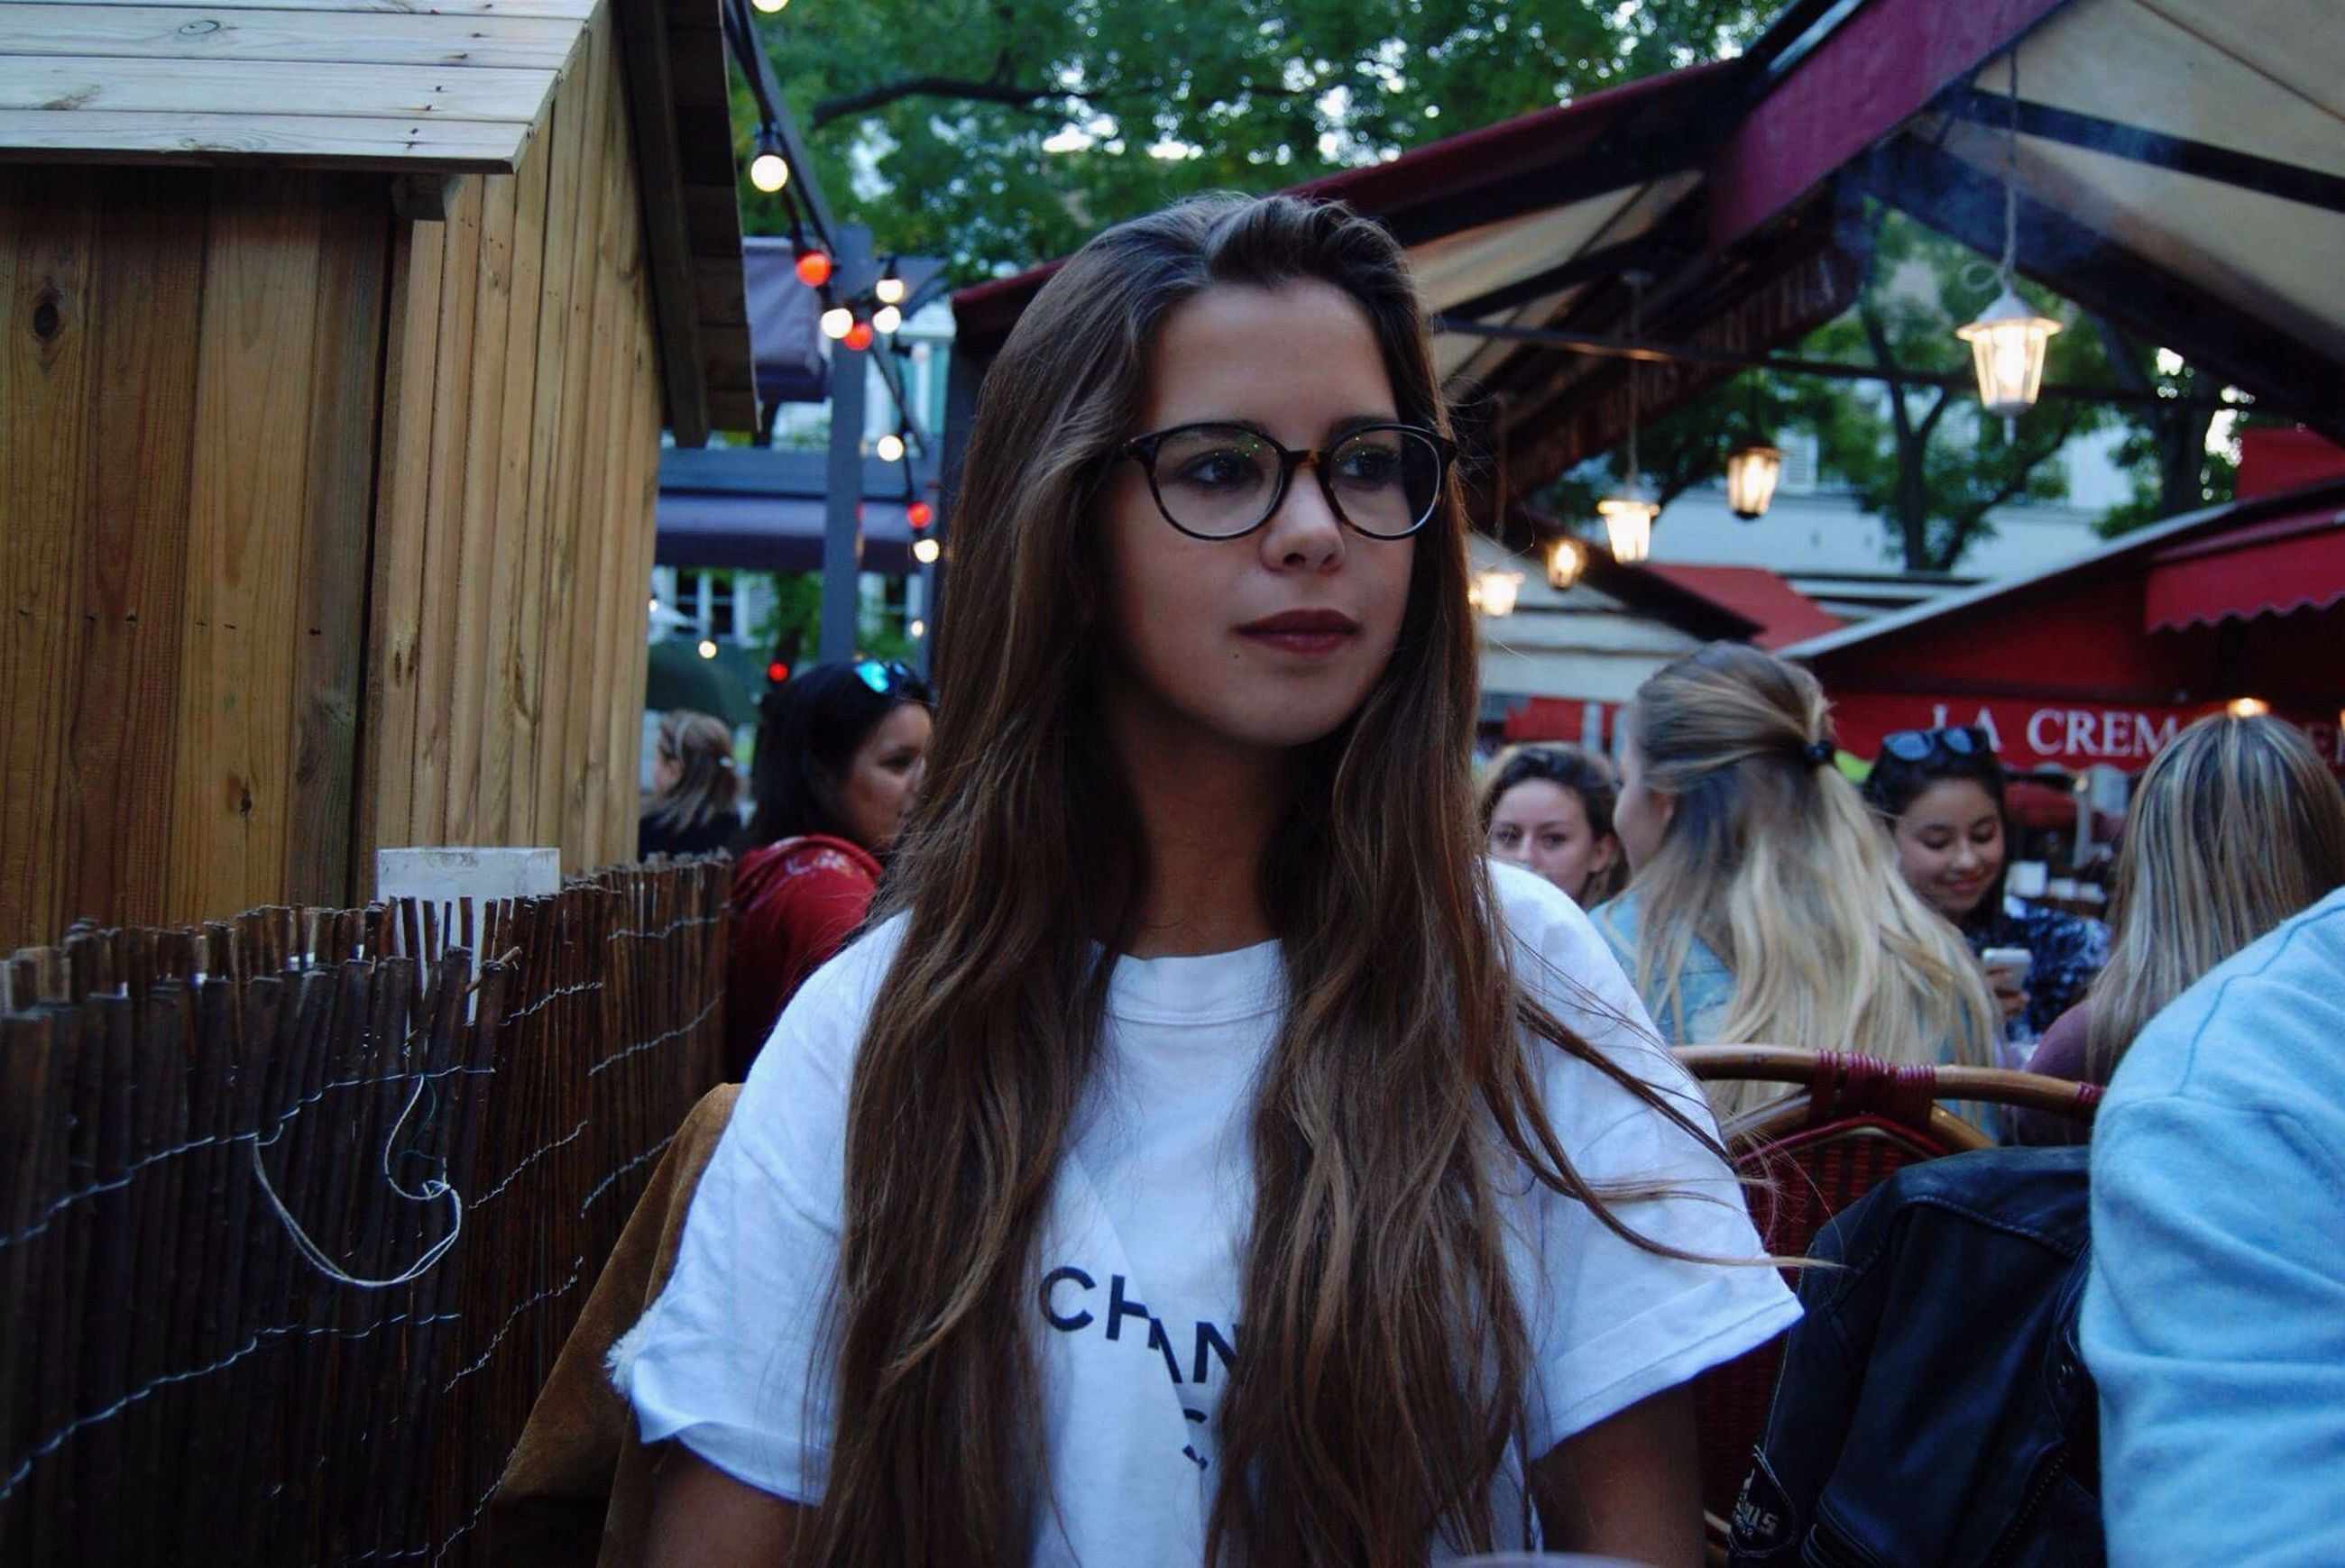 long hair, leisure activity, lifestyles, casual clothing, young women, person, front view, young adult, beauty, looking at camera, beautiful people